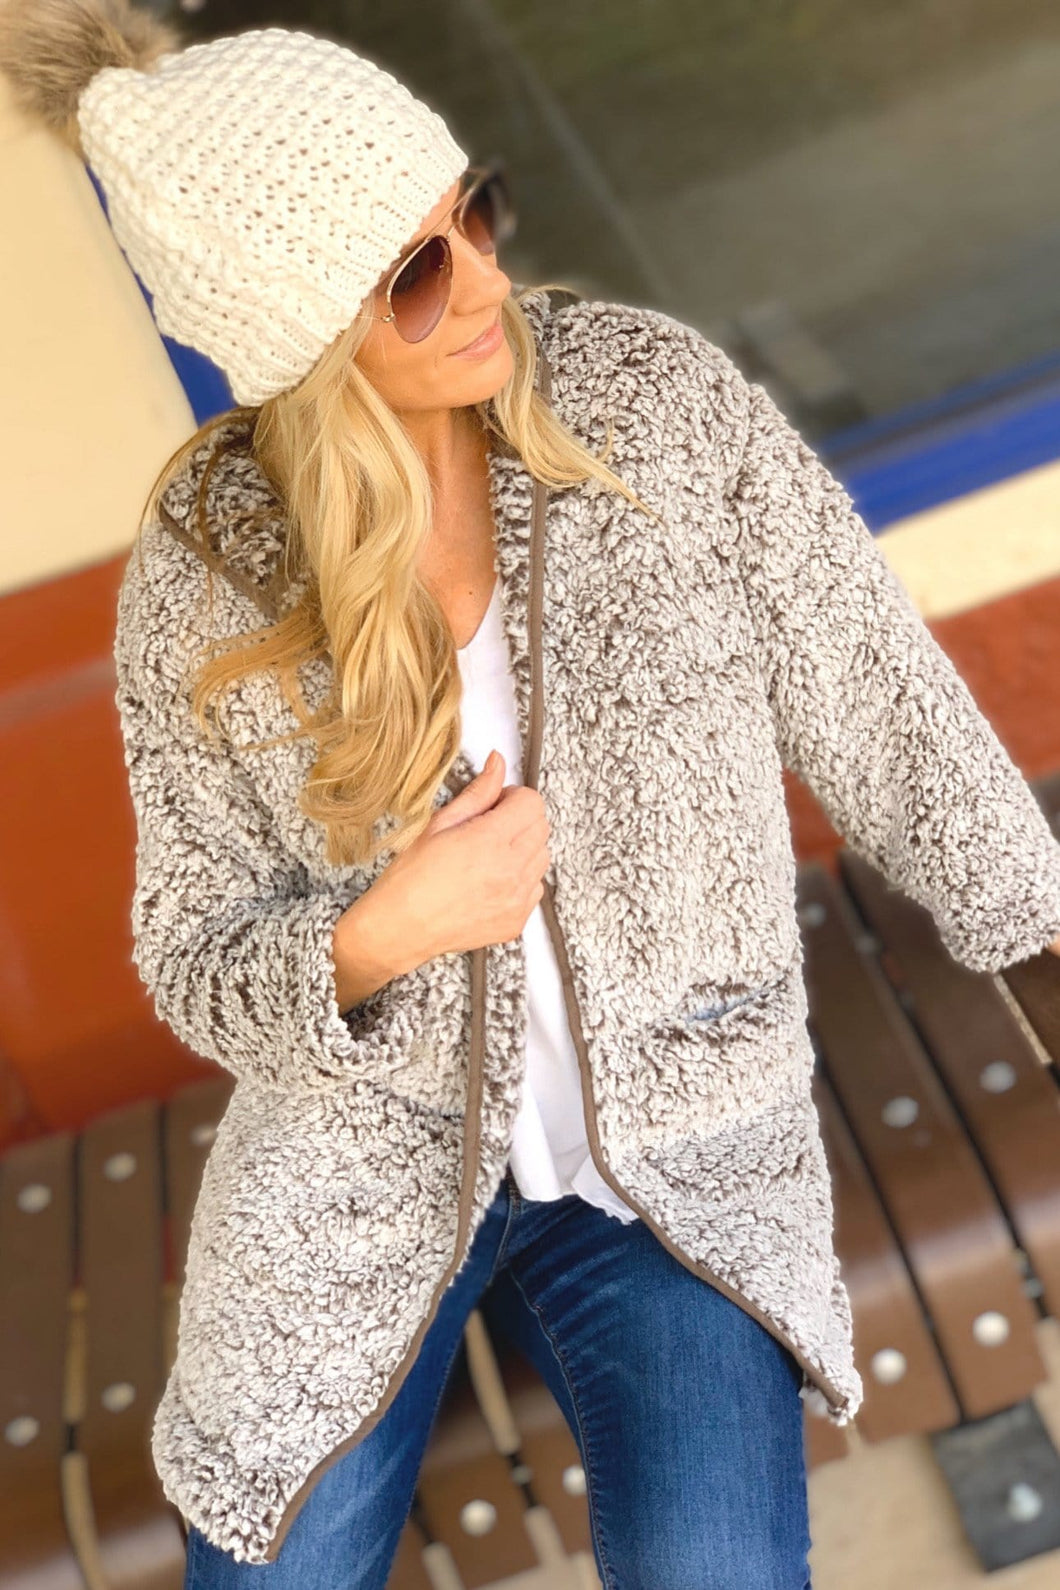 SAY IT AIN'T SNOW SHERPA HOODED JACKET-MOCHA - Infinity Raine